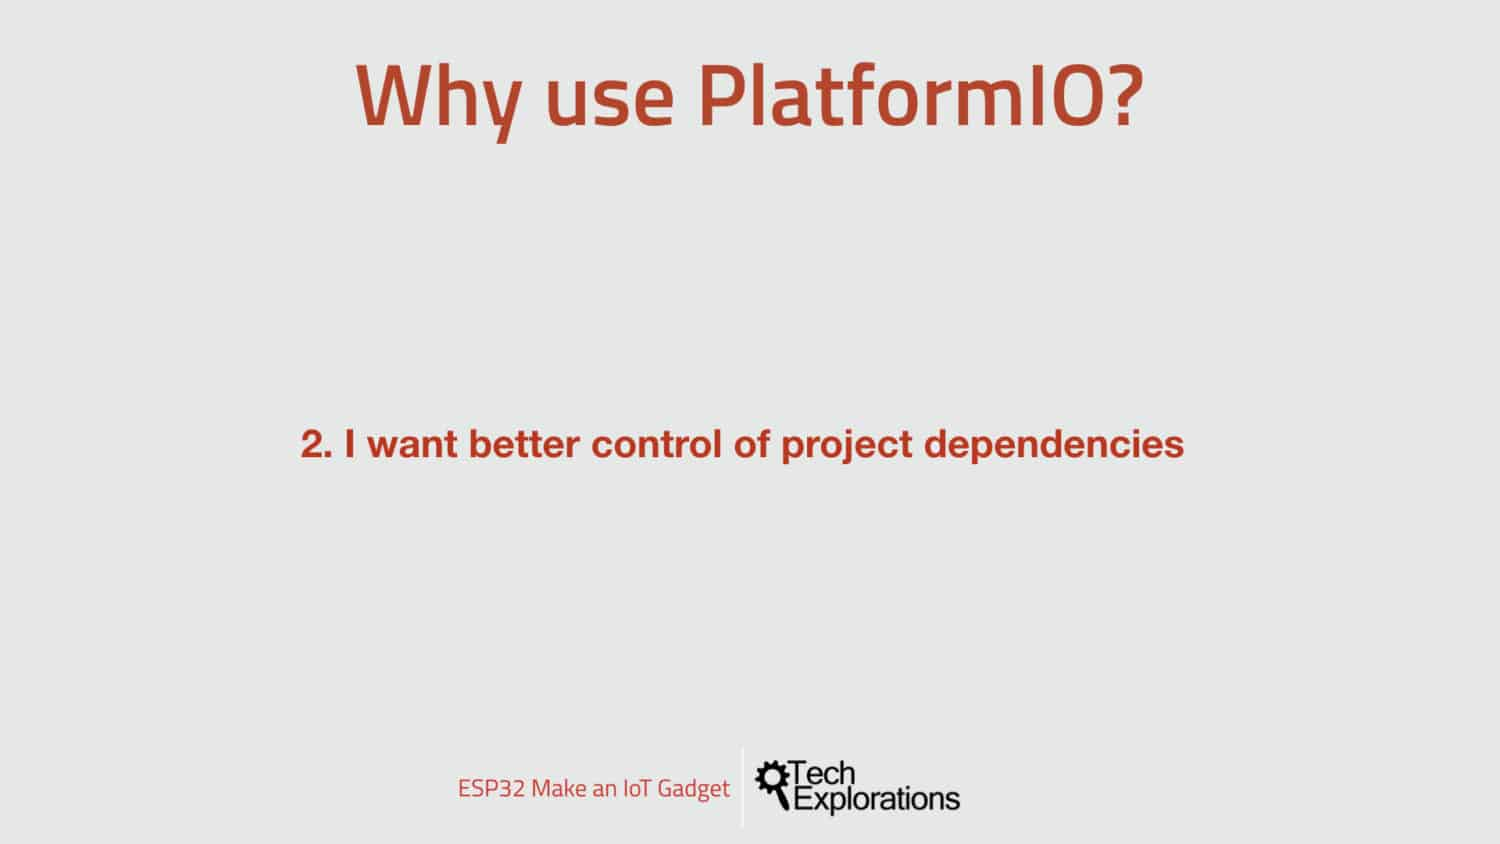 Reason 2: I want better control of project dependencies